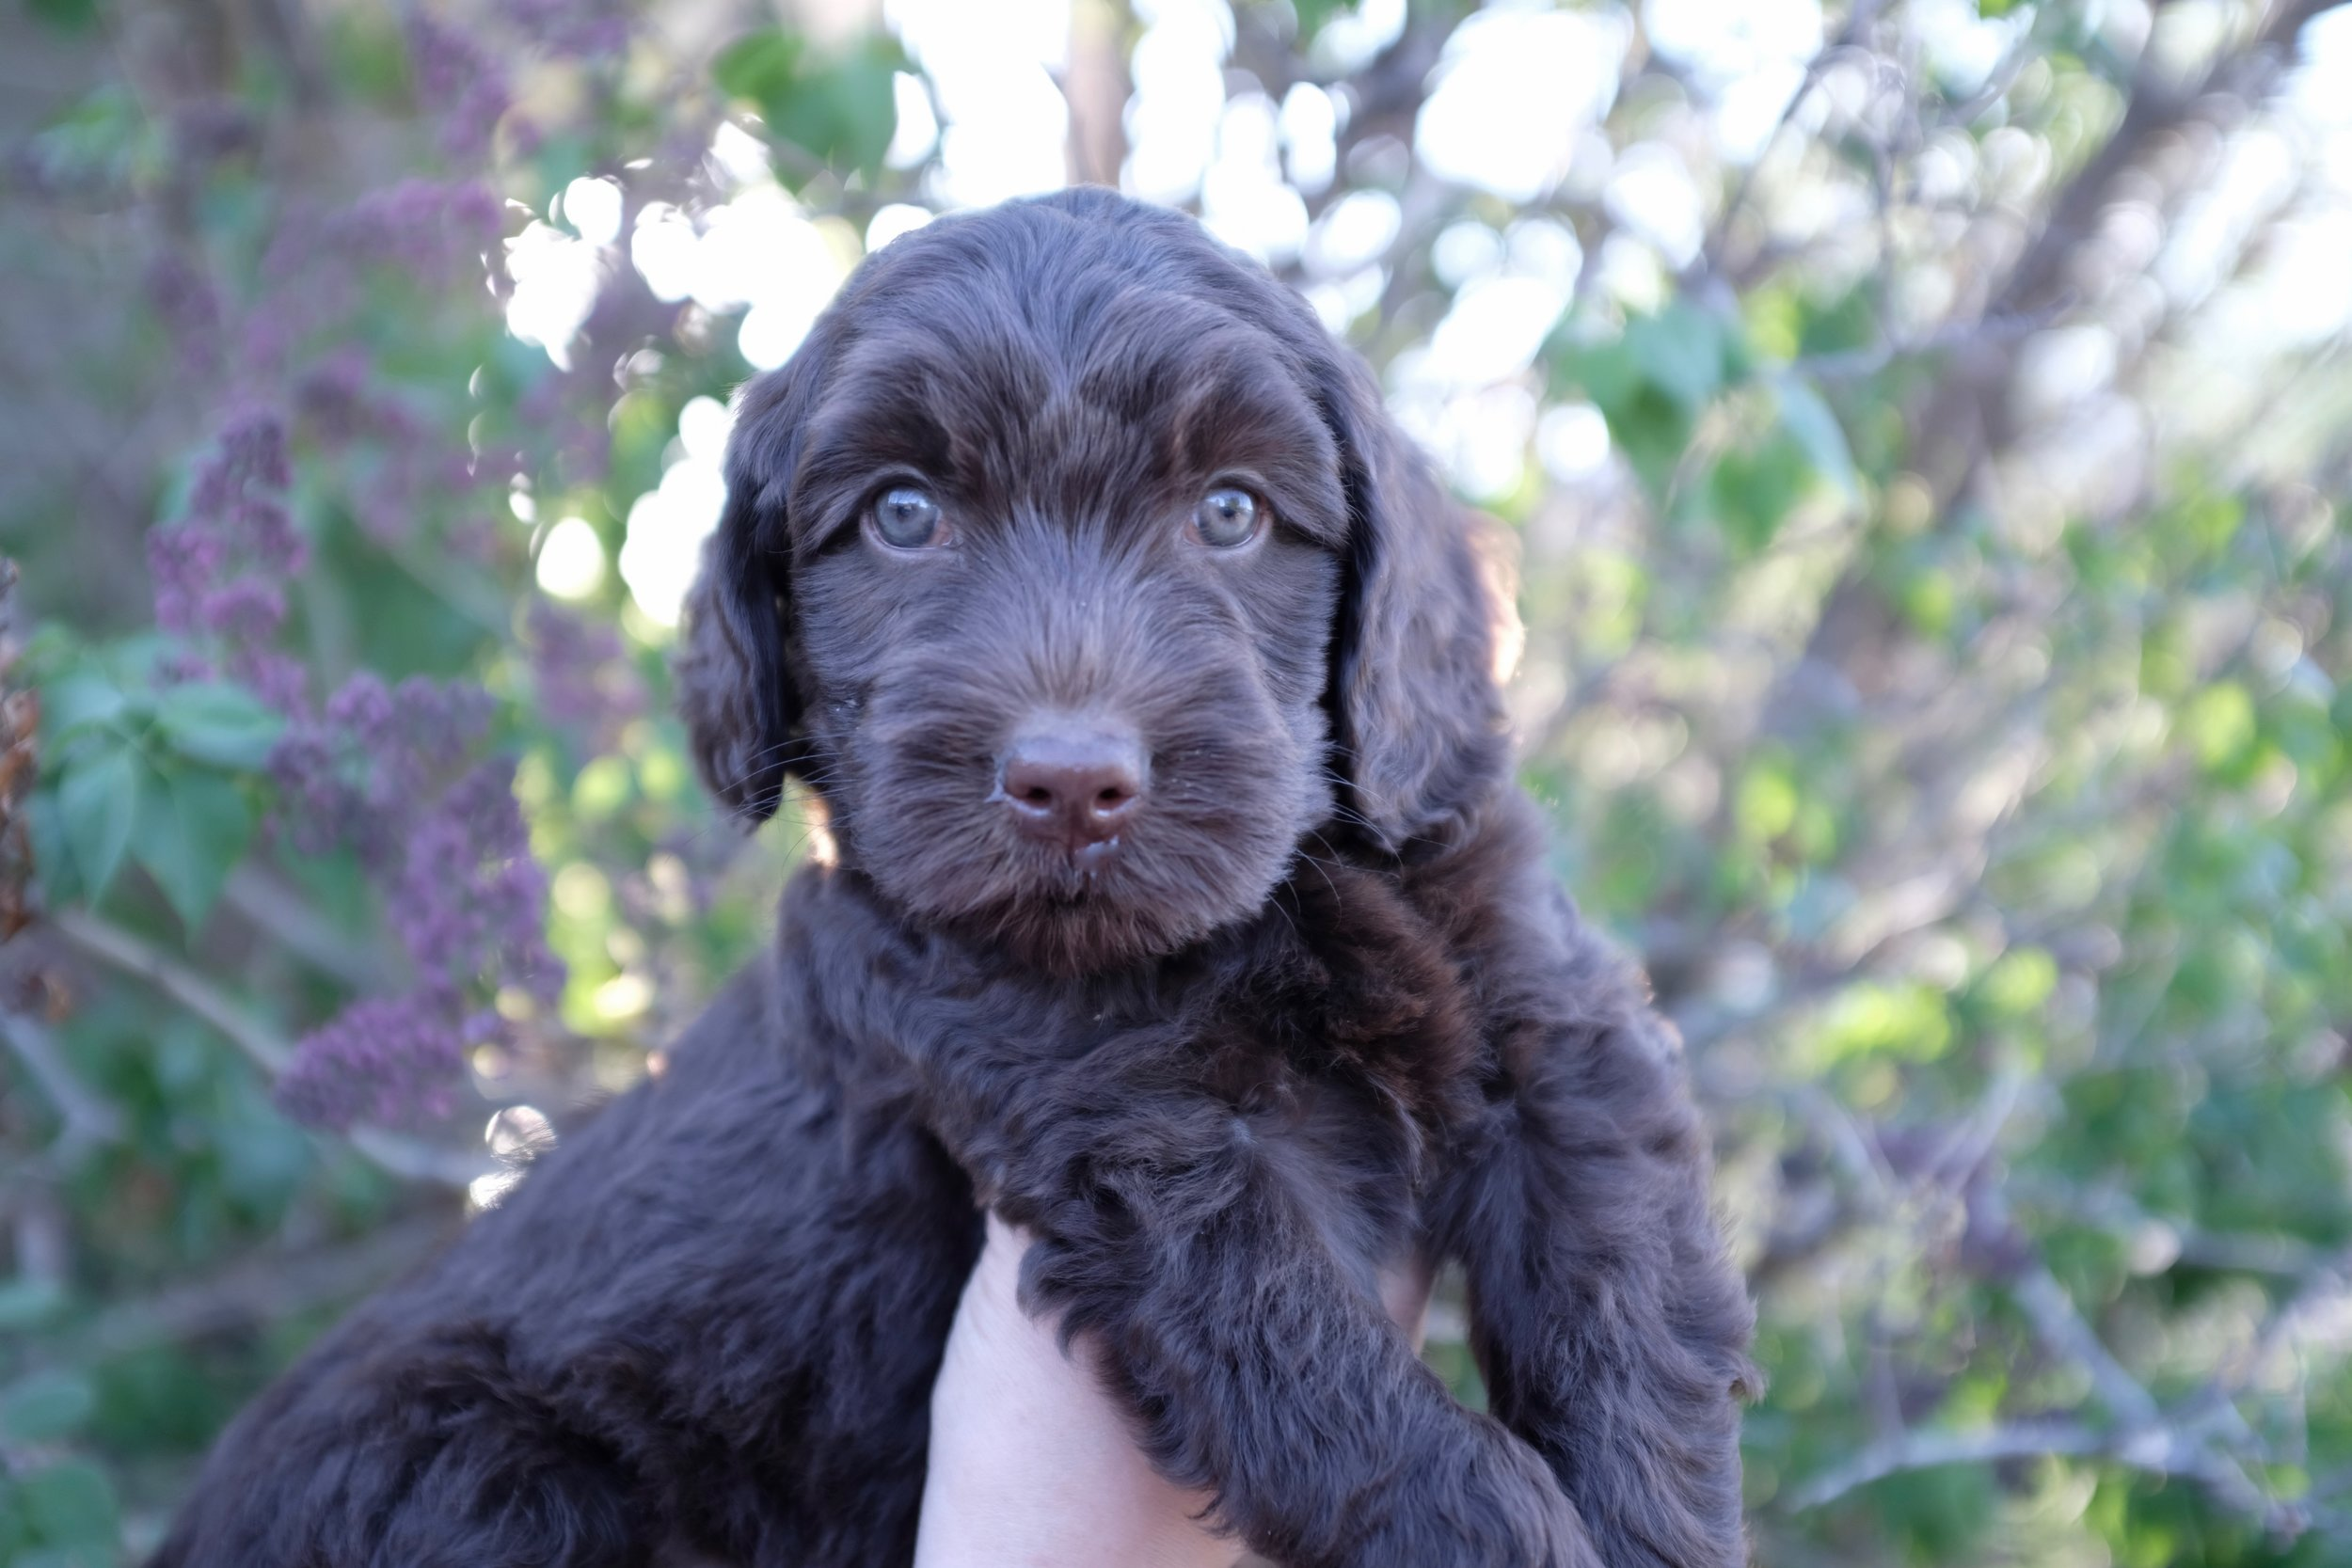 And last but not least, Orange Girl will be our newest addition to the Prairie Doodle program! Congrats to our guardian family, the Murray's!